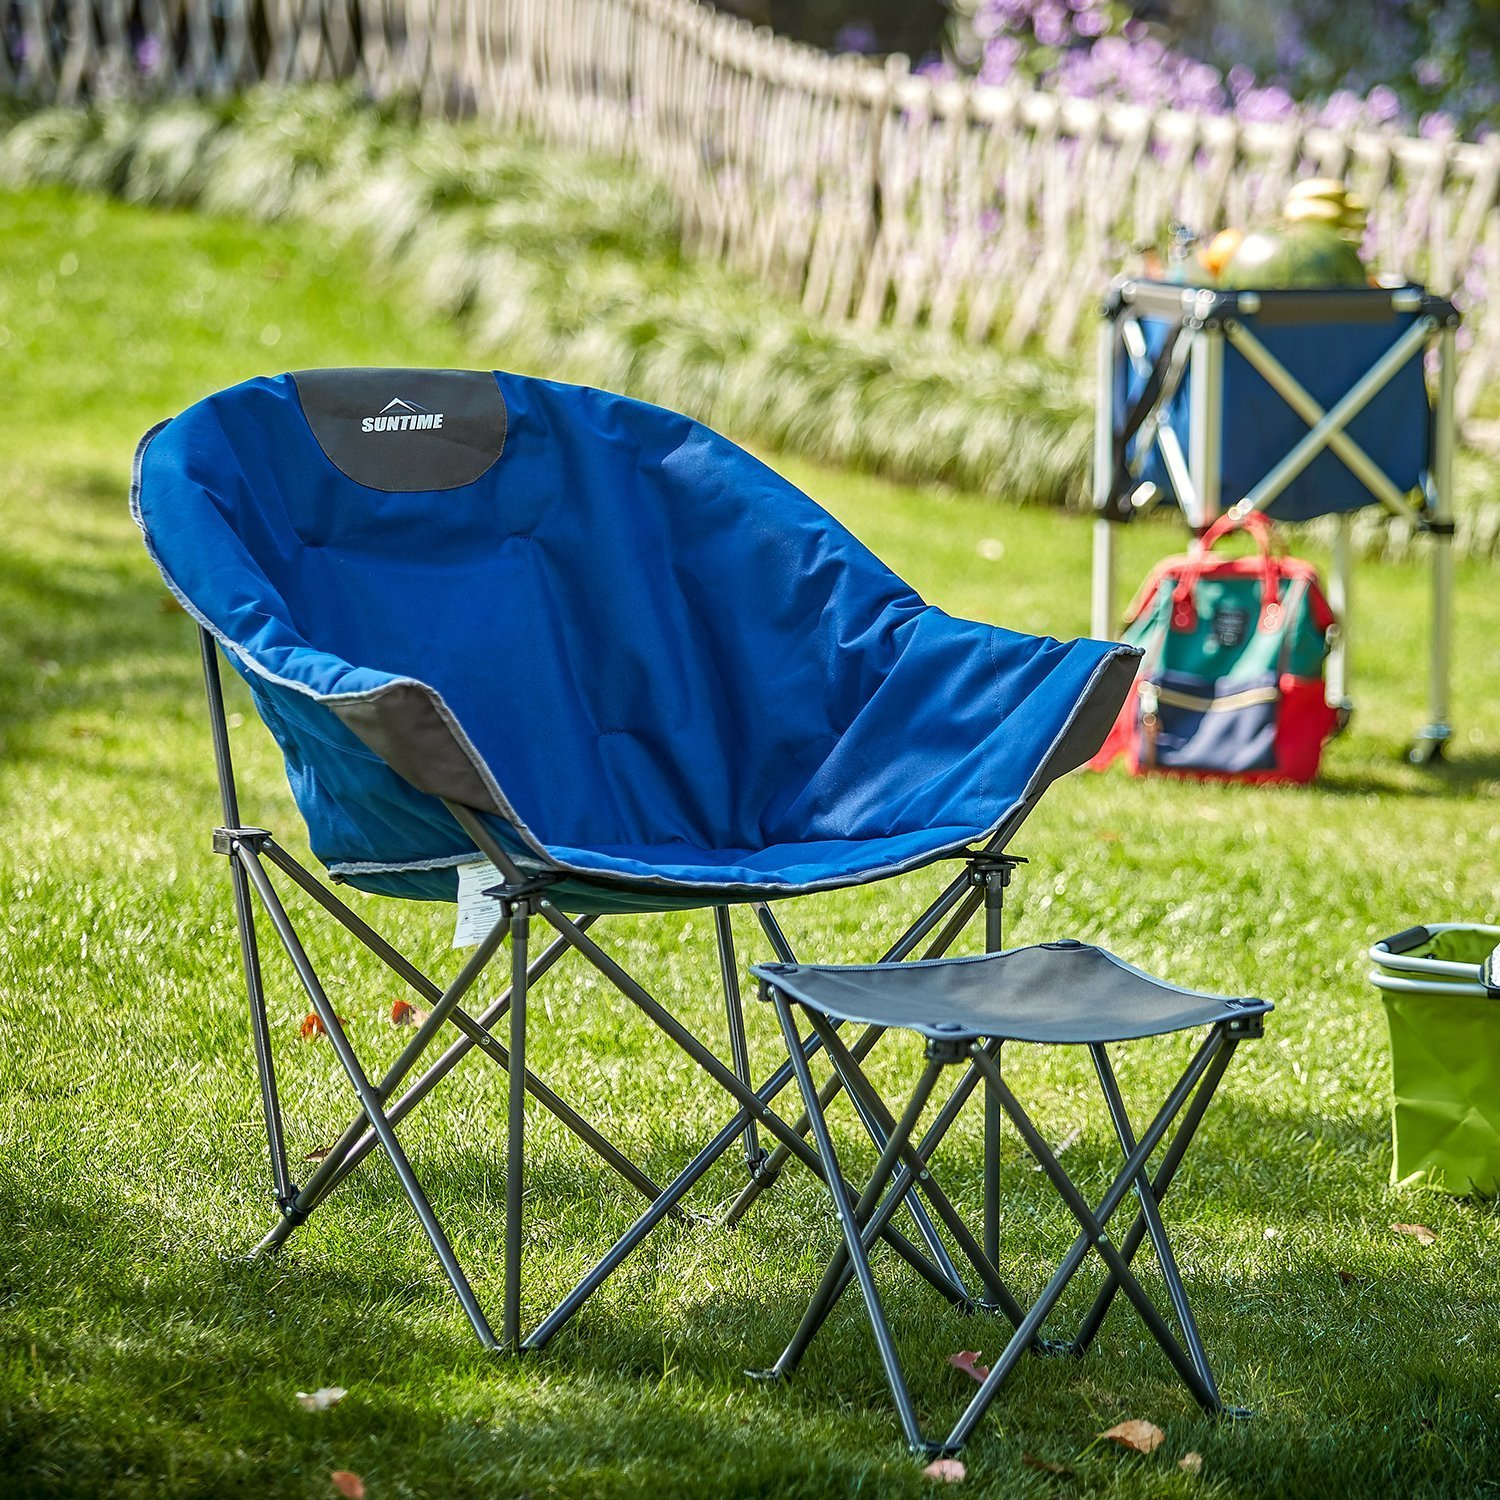 SunTime Folding Camping Chair with Footstool、ポータブルレジャーバック椅子with Carryバッグ B0768DRMC4